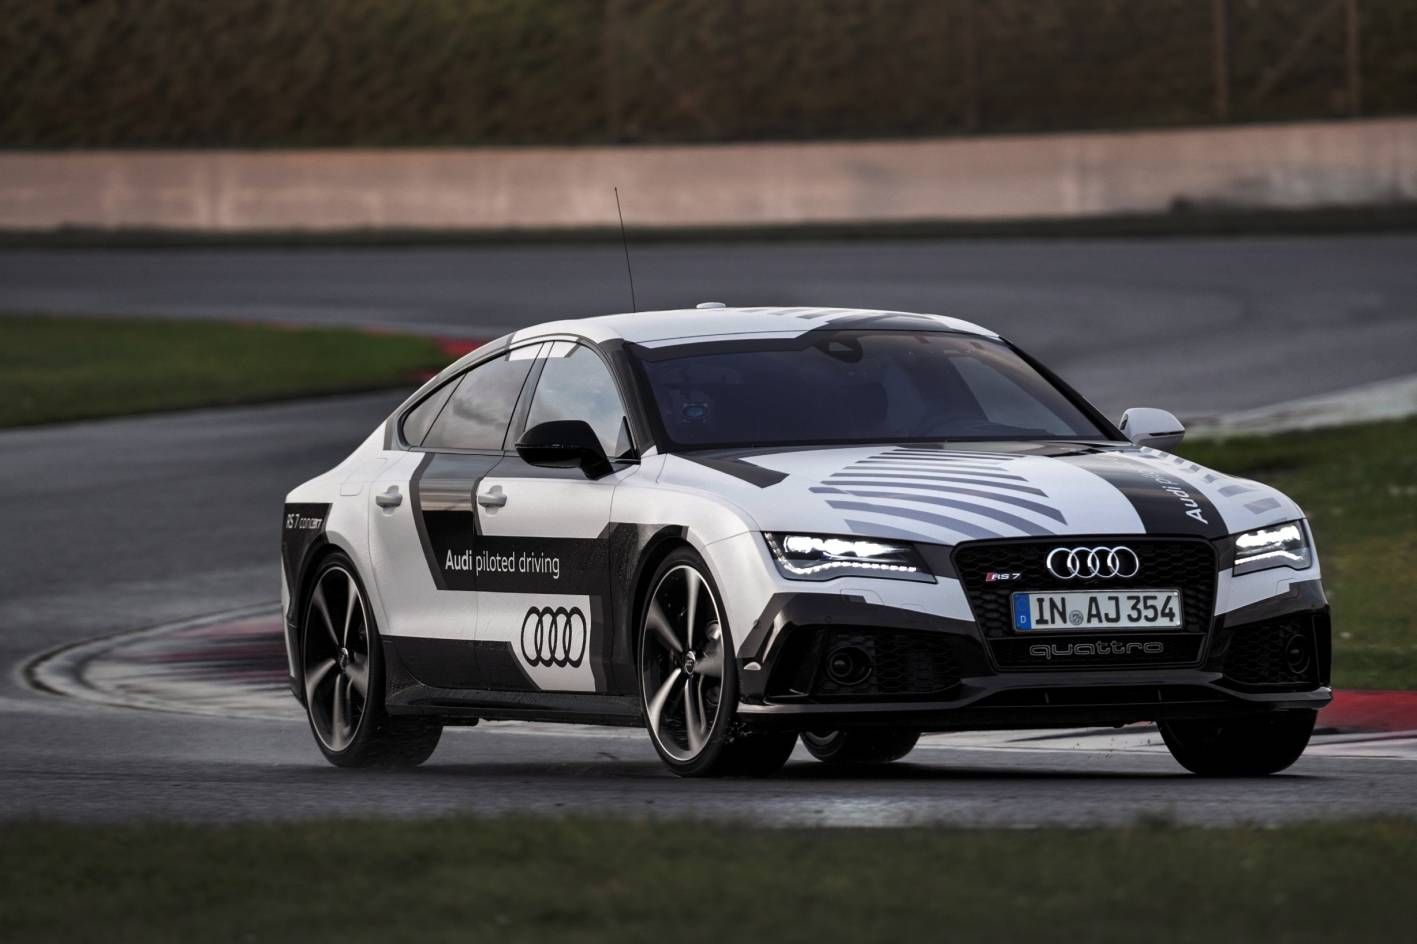 audi rs 7 piloted driving concept tackles hockenheim without a driver. Black Bedroom Furniture Sets. Home Design Ideas